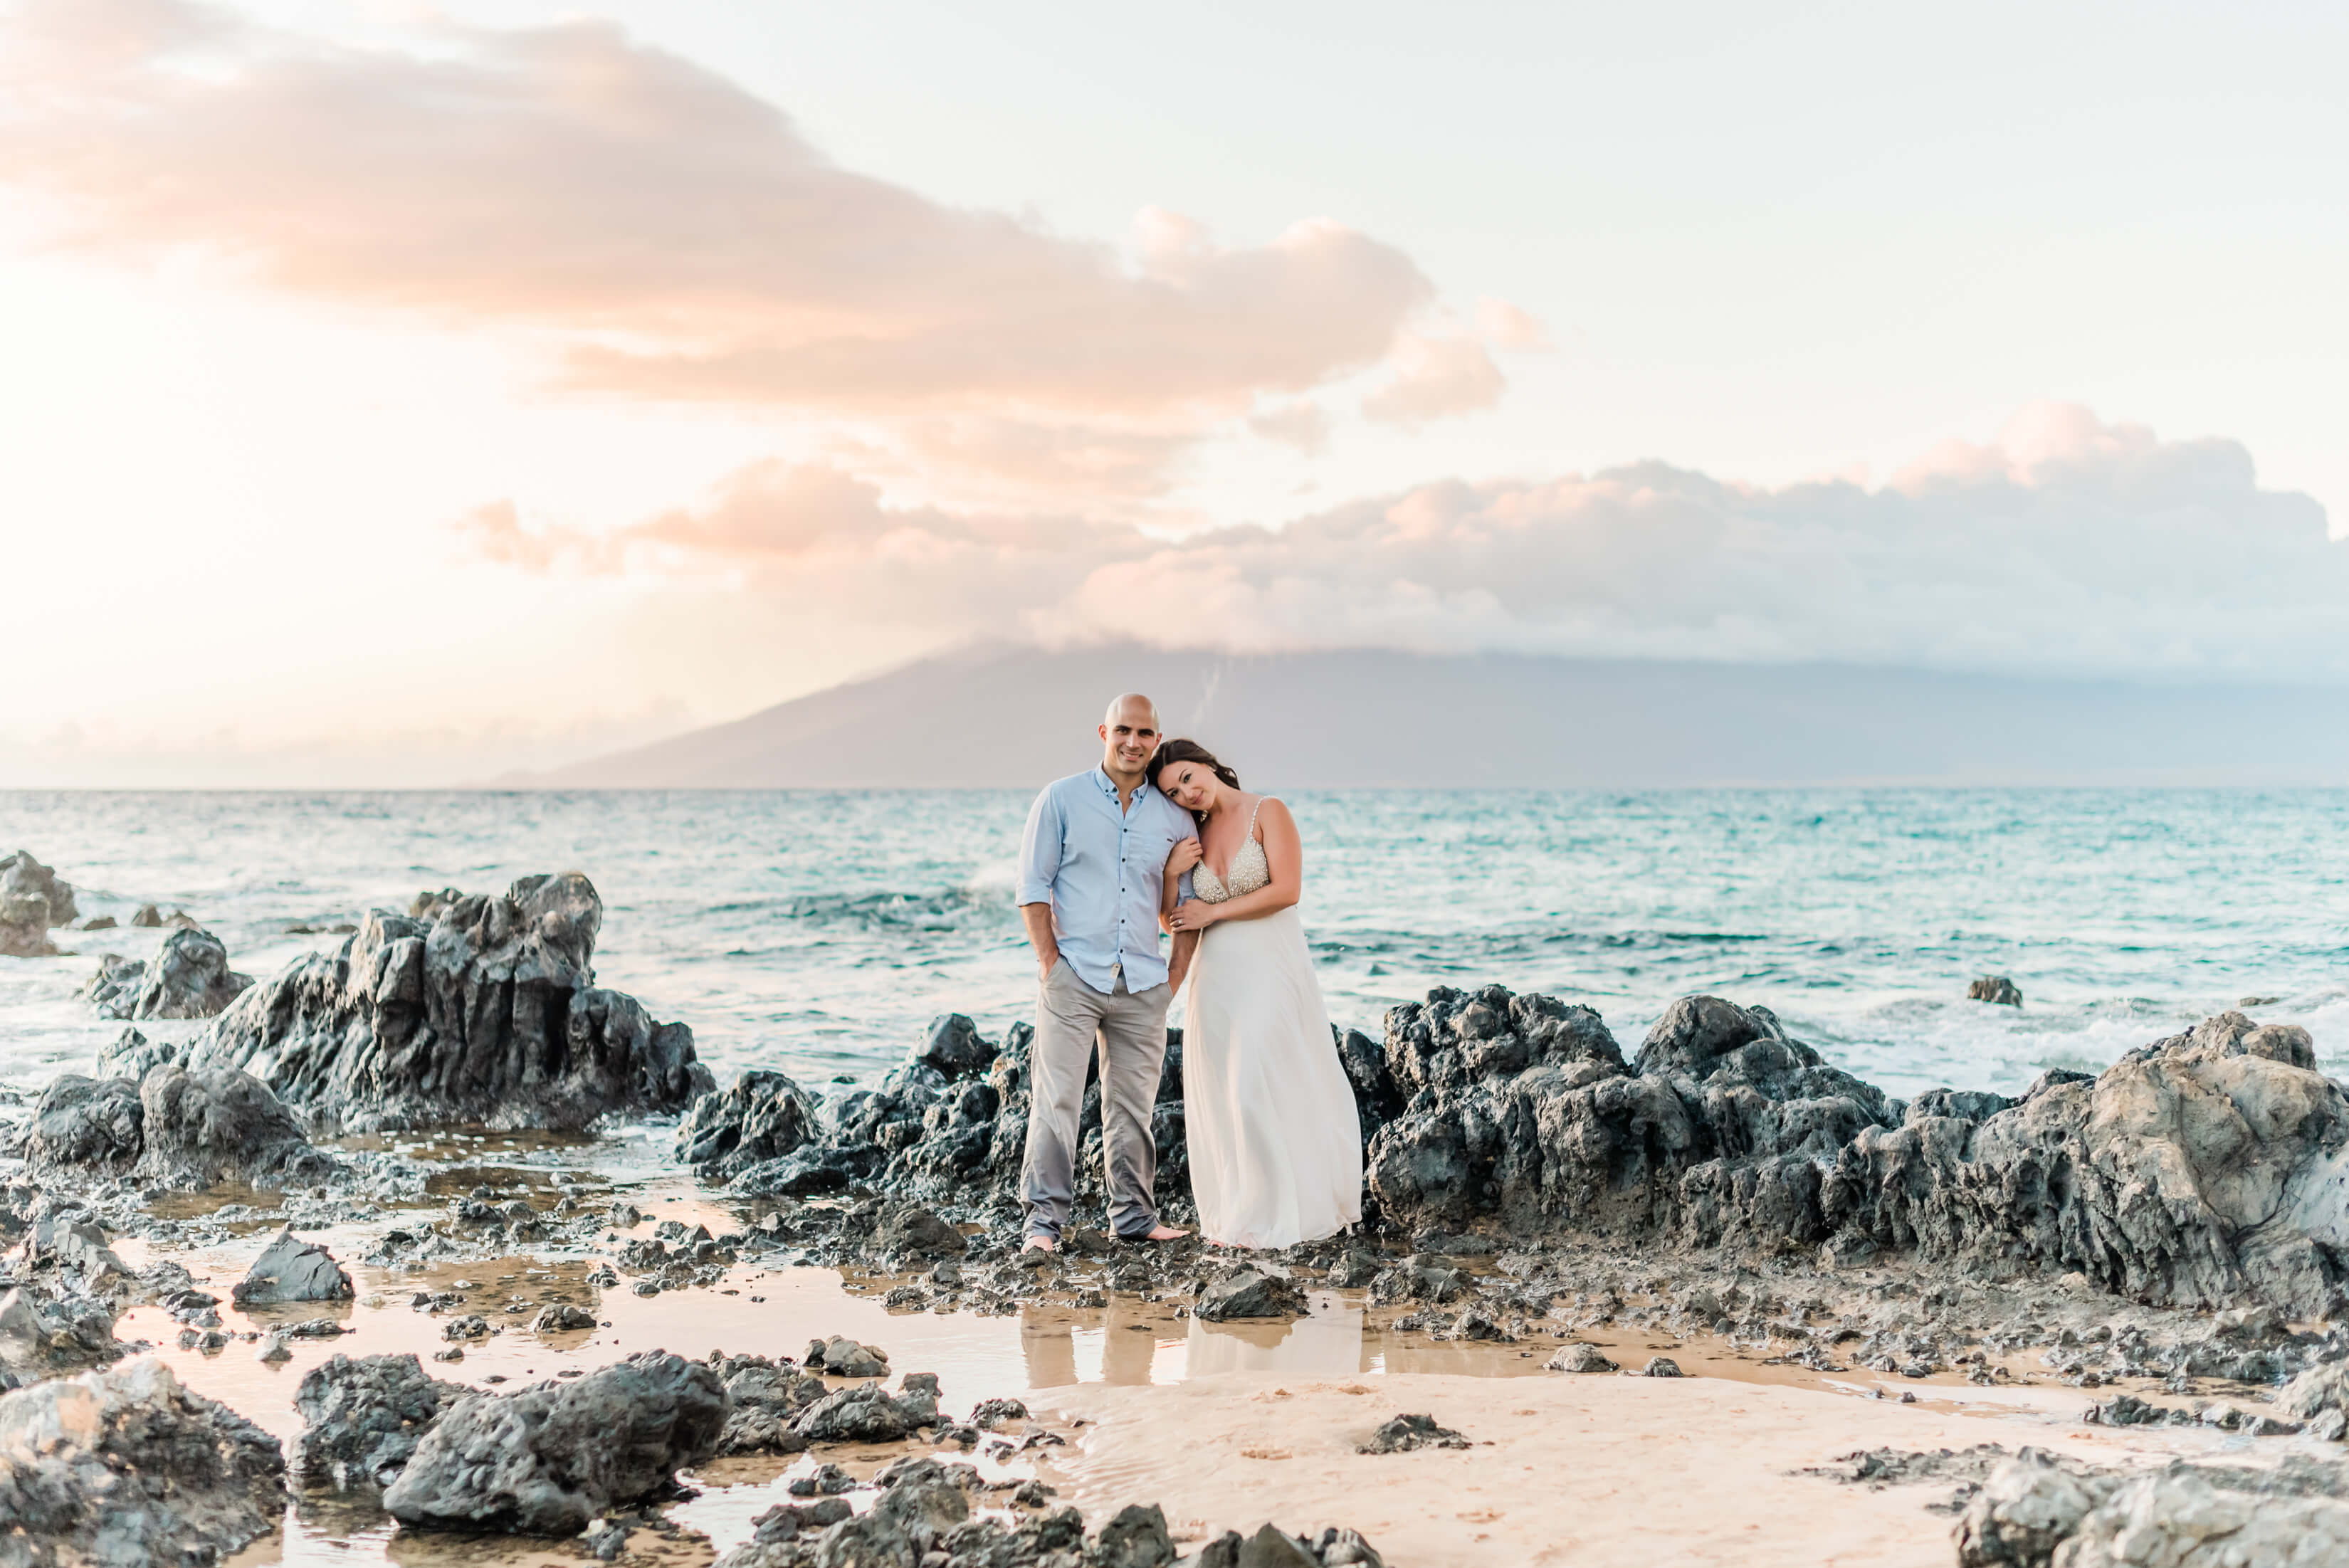 couple standing on the beach shoreline in Maui, Hawaii, USA